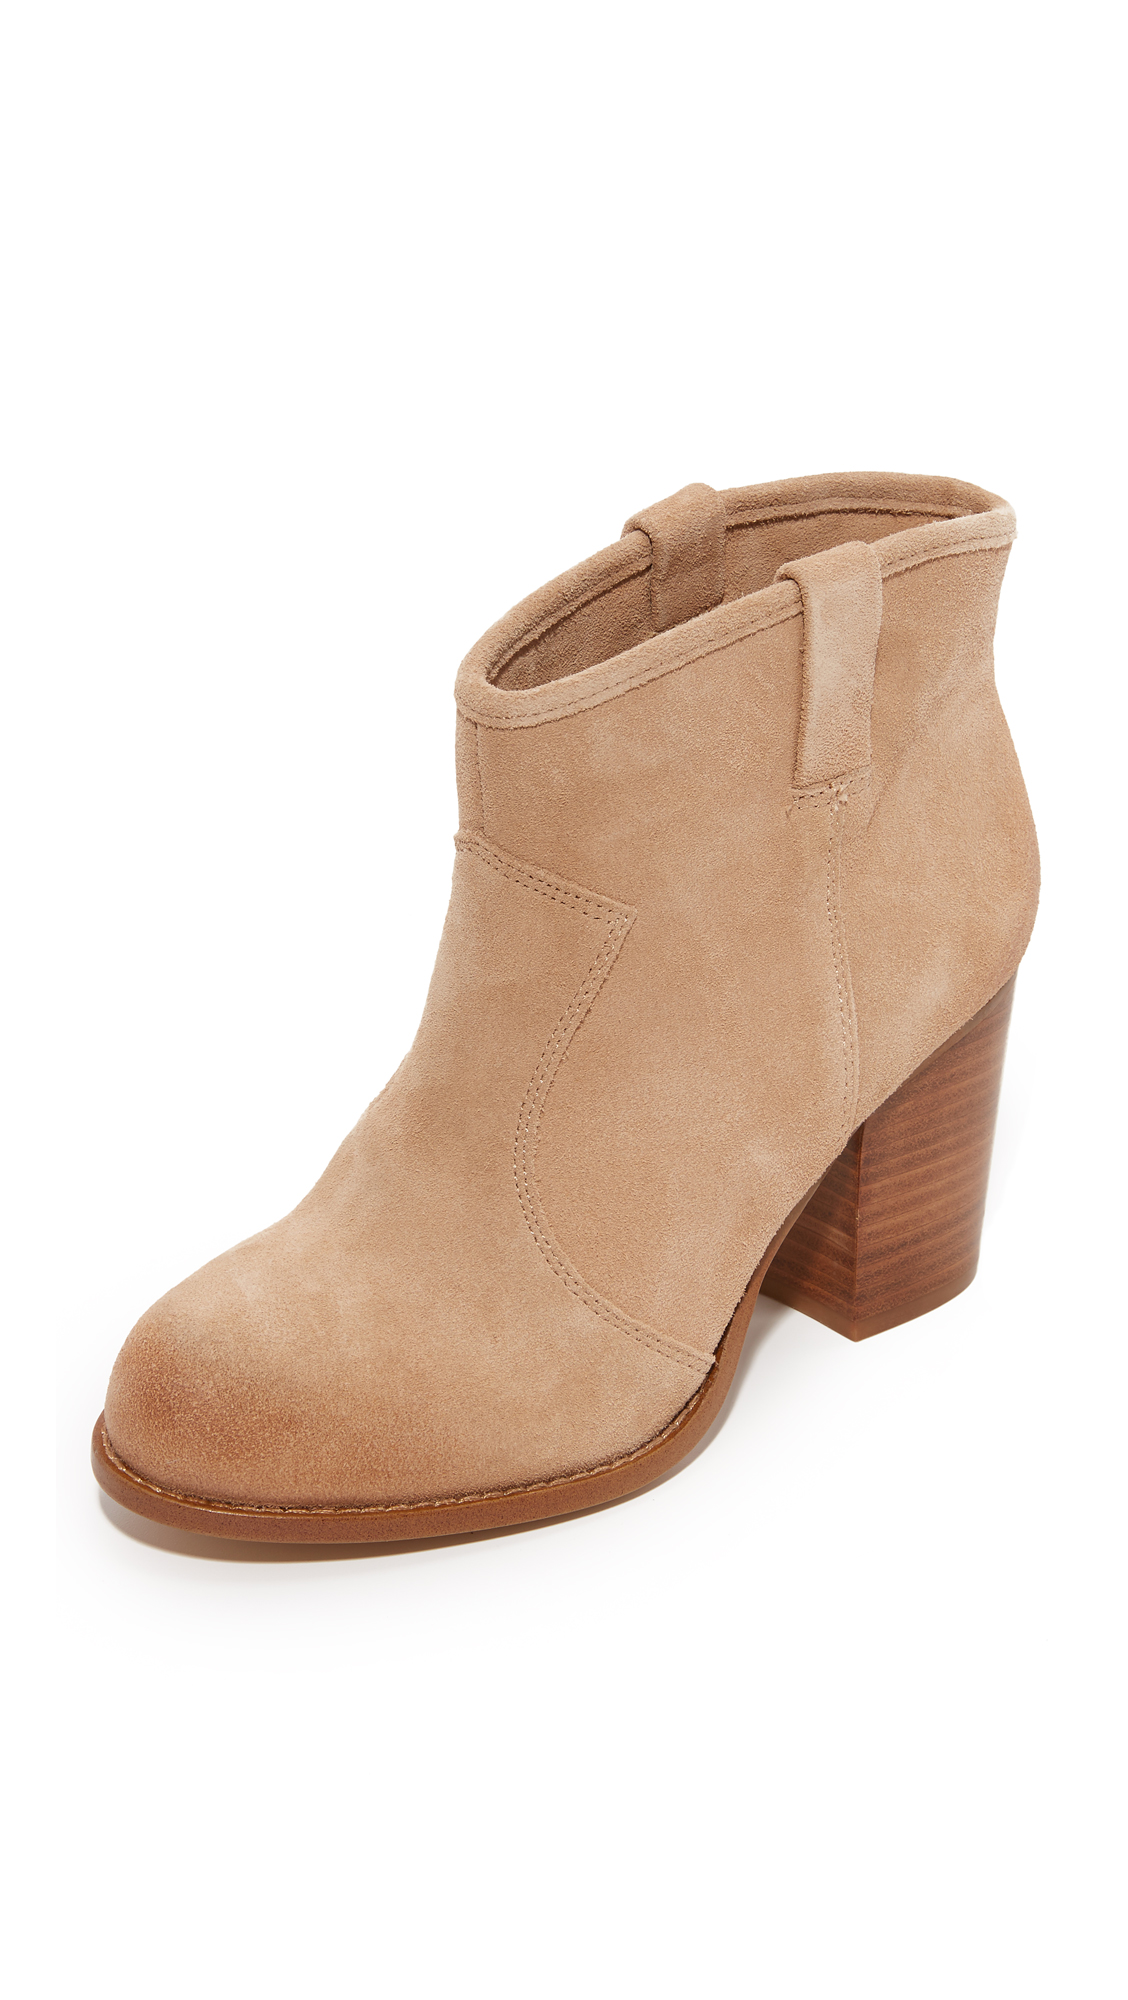 Splendid Suede Booties - Nut